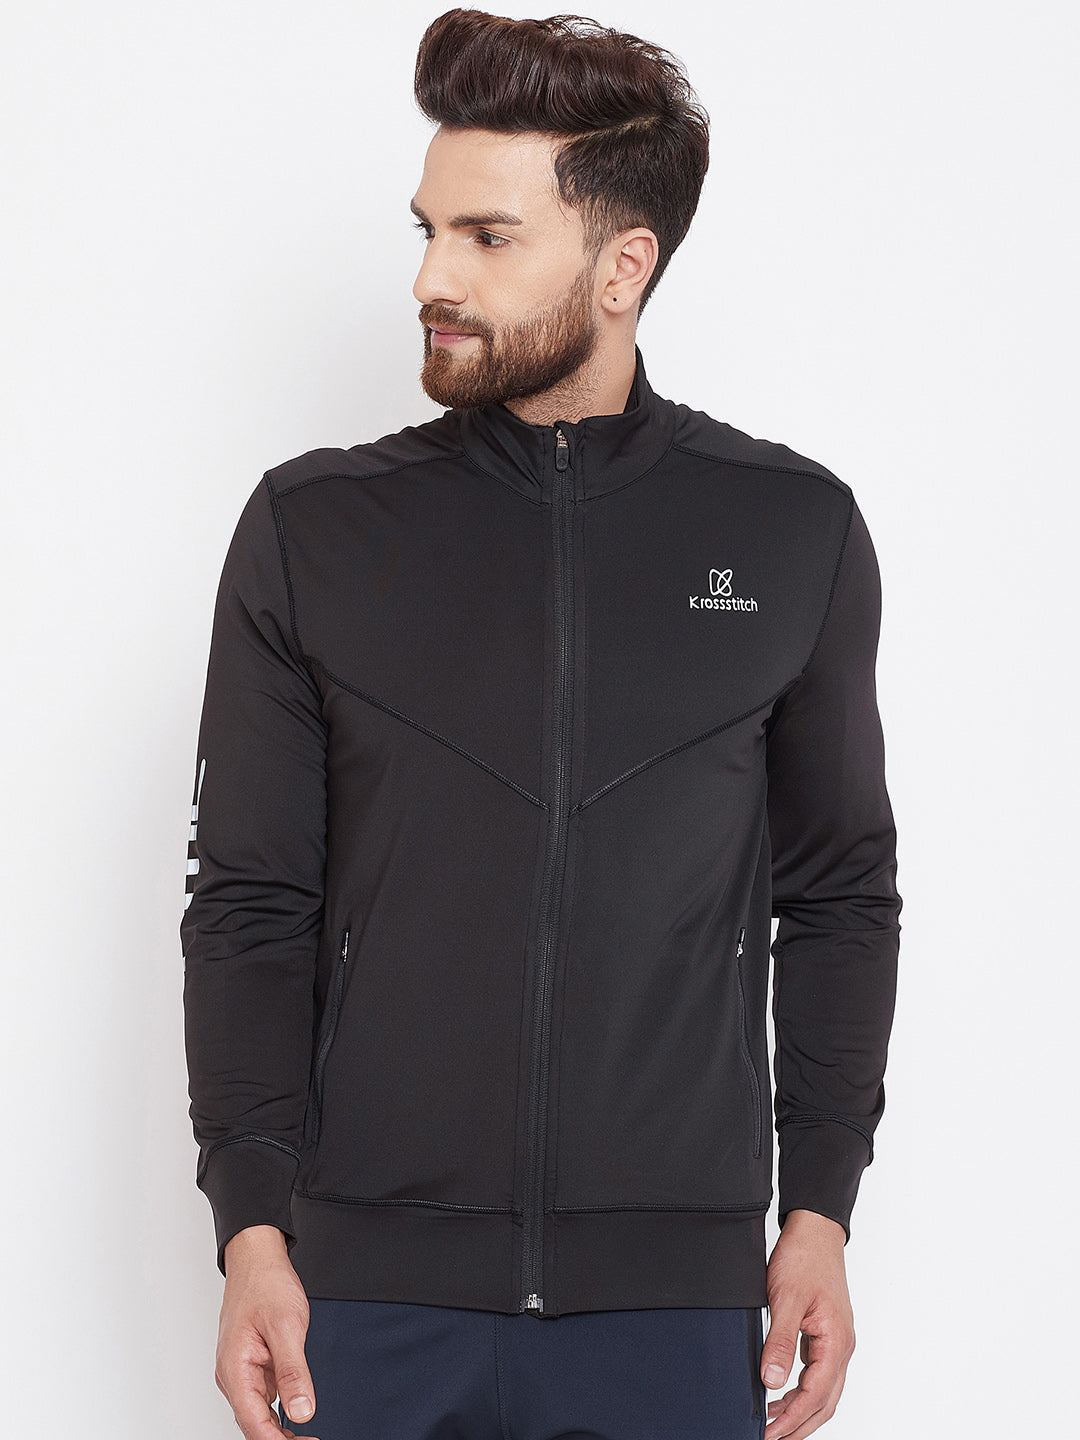 KROSSSTITCH Sports Men's Polyester Active Wear Jacket| Running Jacket | Gym Wear